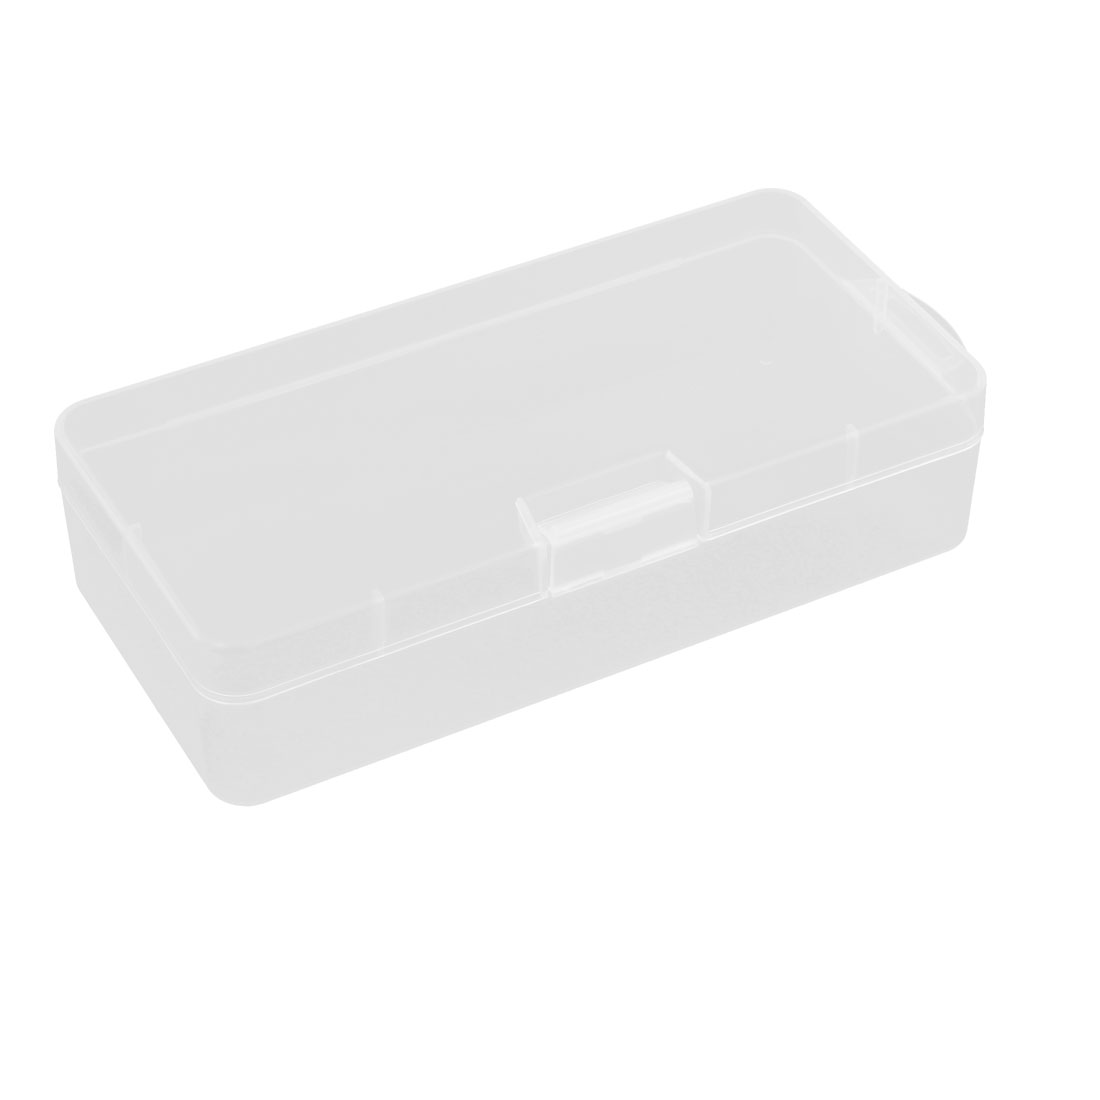 Clear White Plastic Multi-purpose Electronic Components Case Storage Box Container 18.5 x 8.8 x 4.5cm